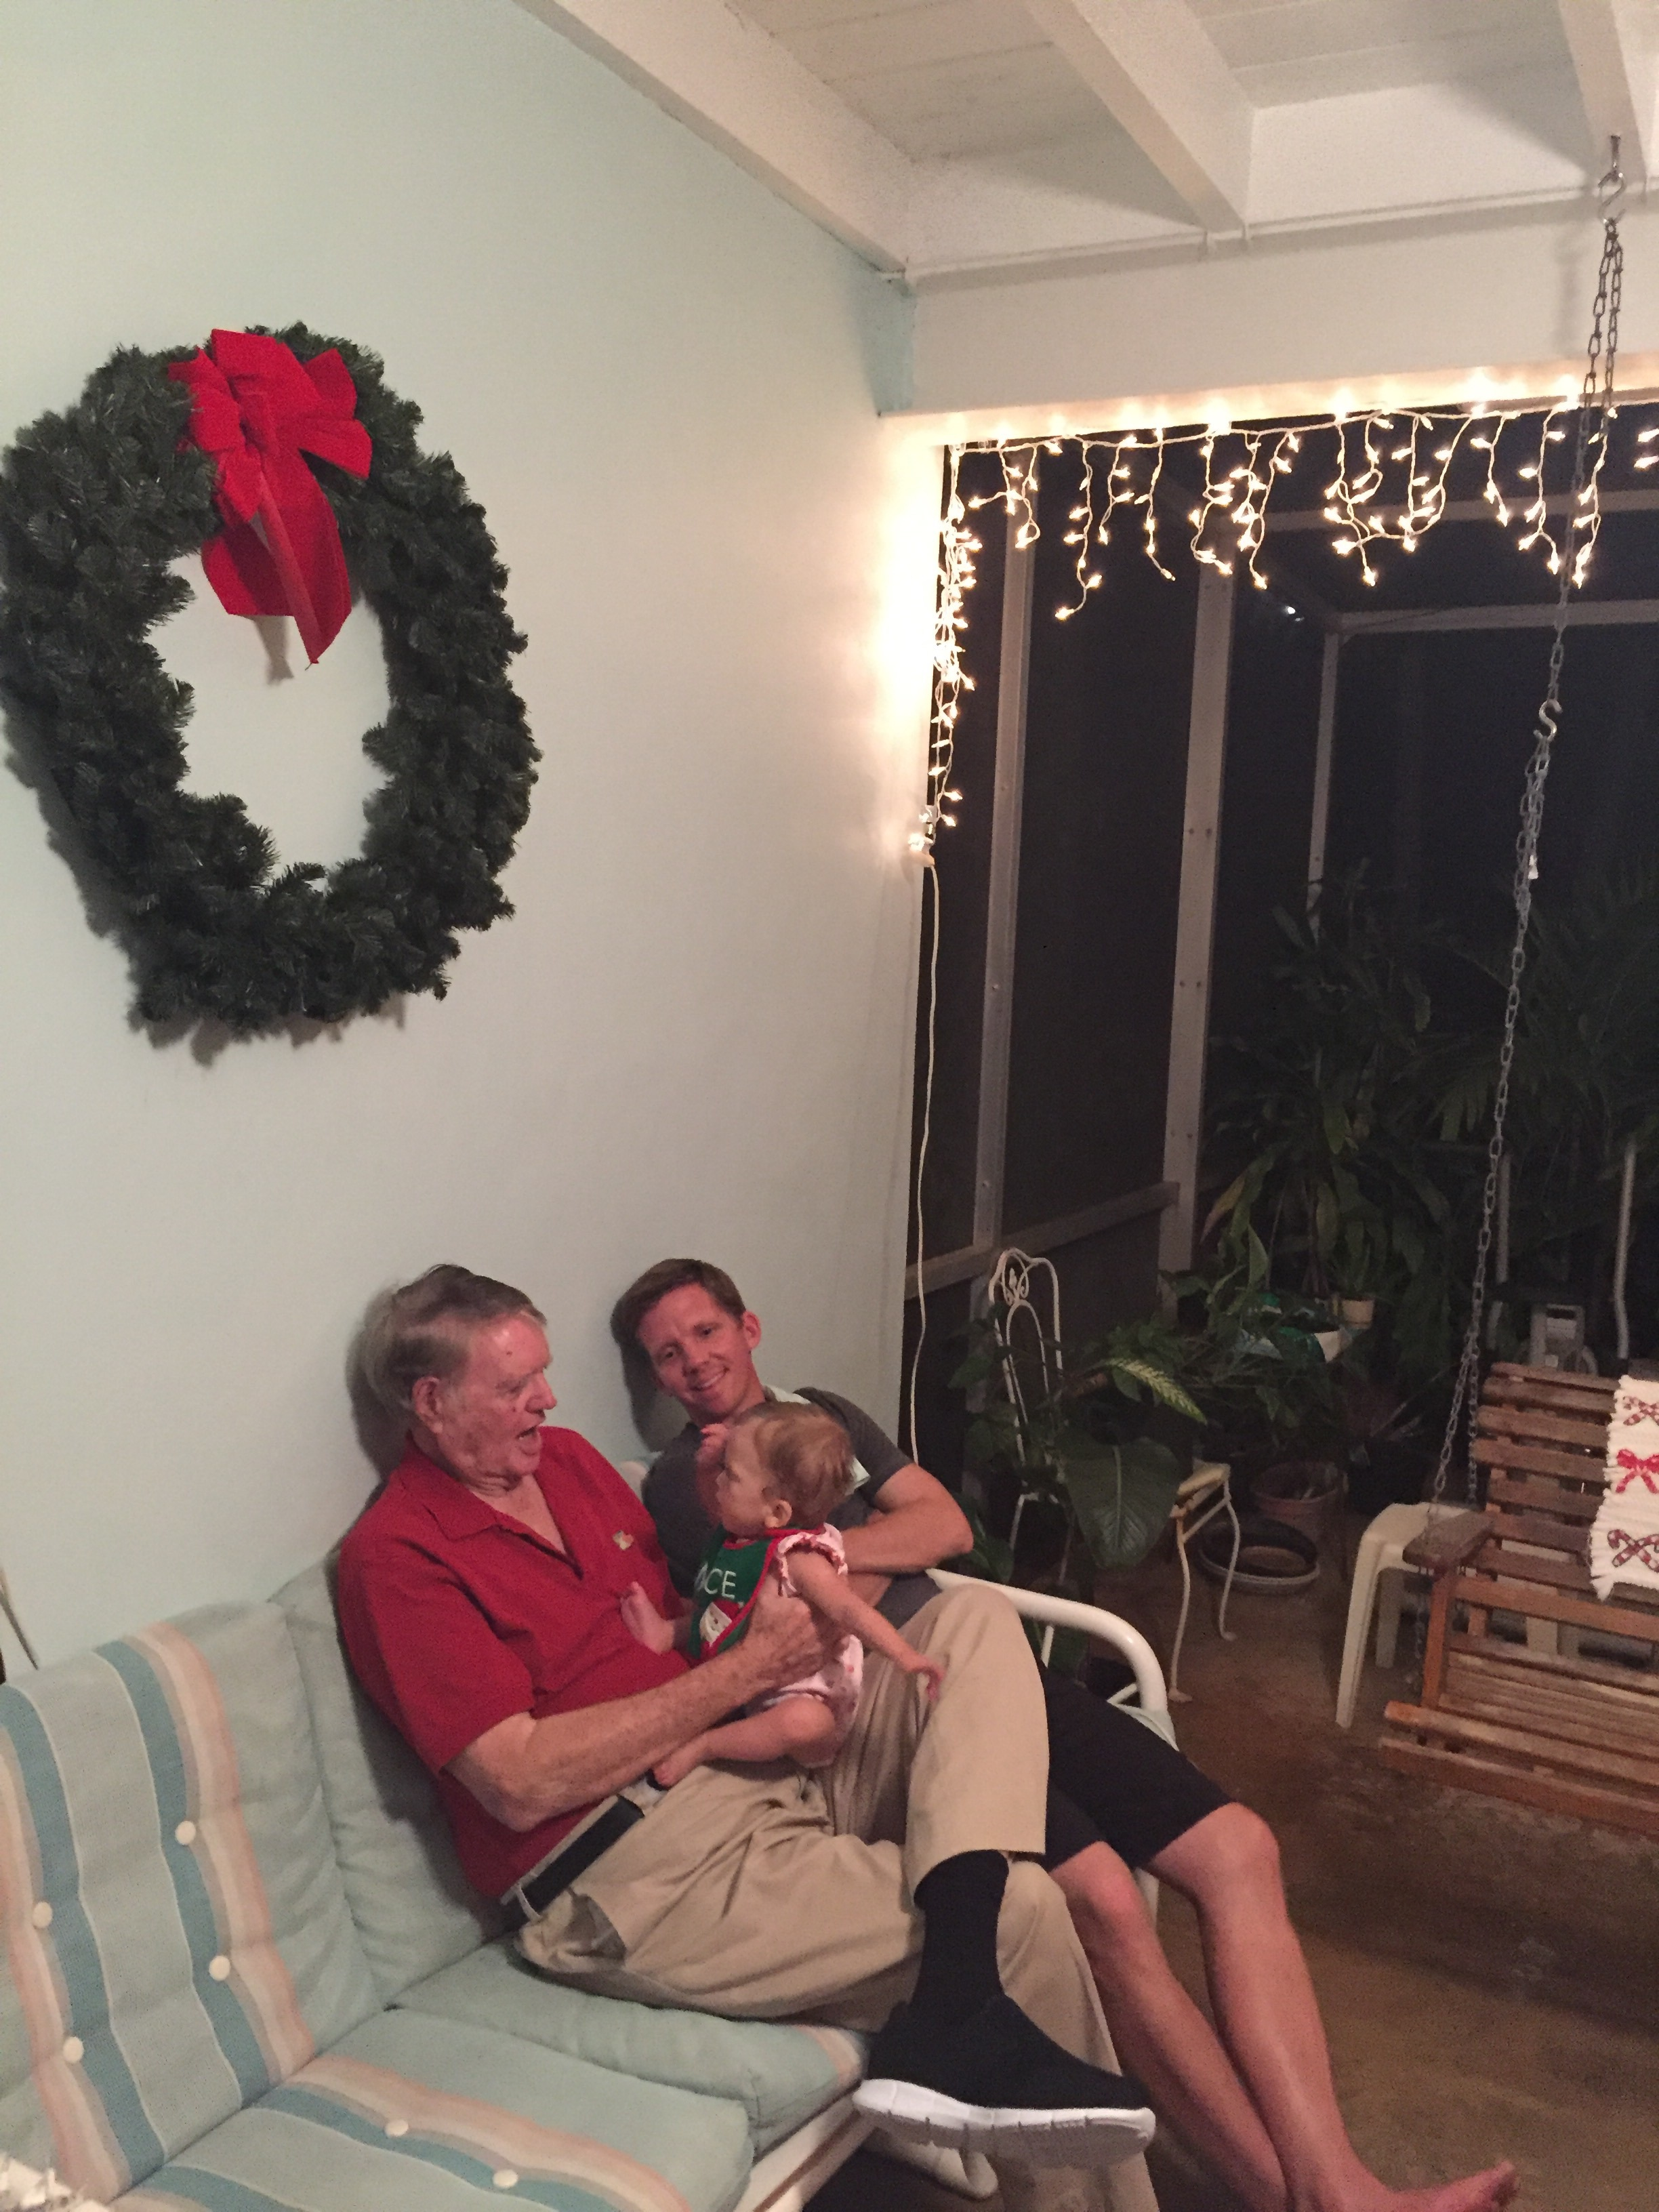 A very Merry Christmas in Florida